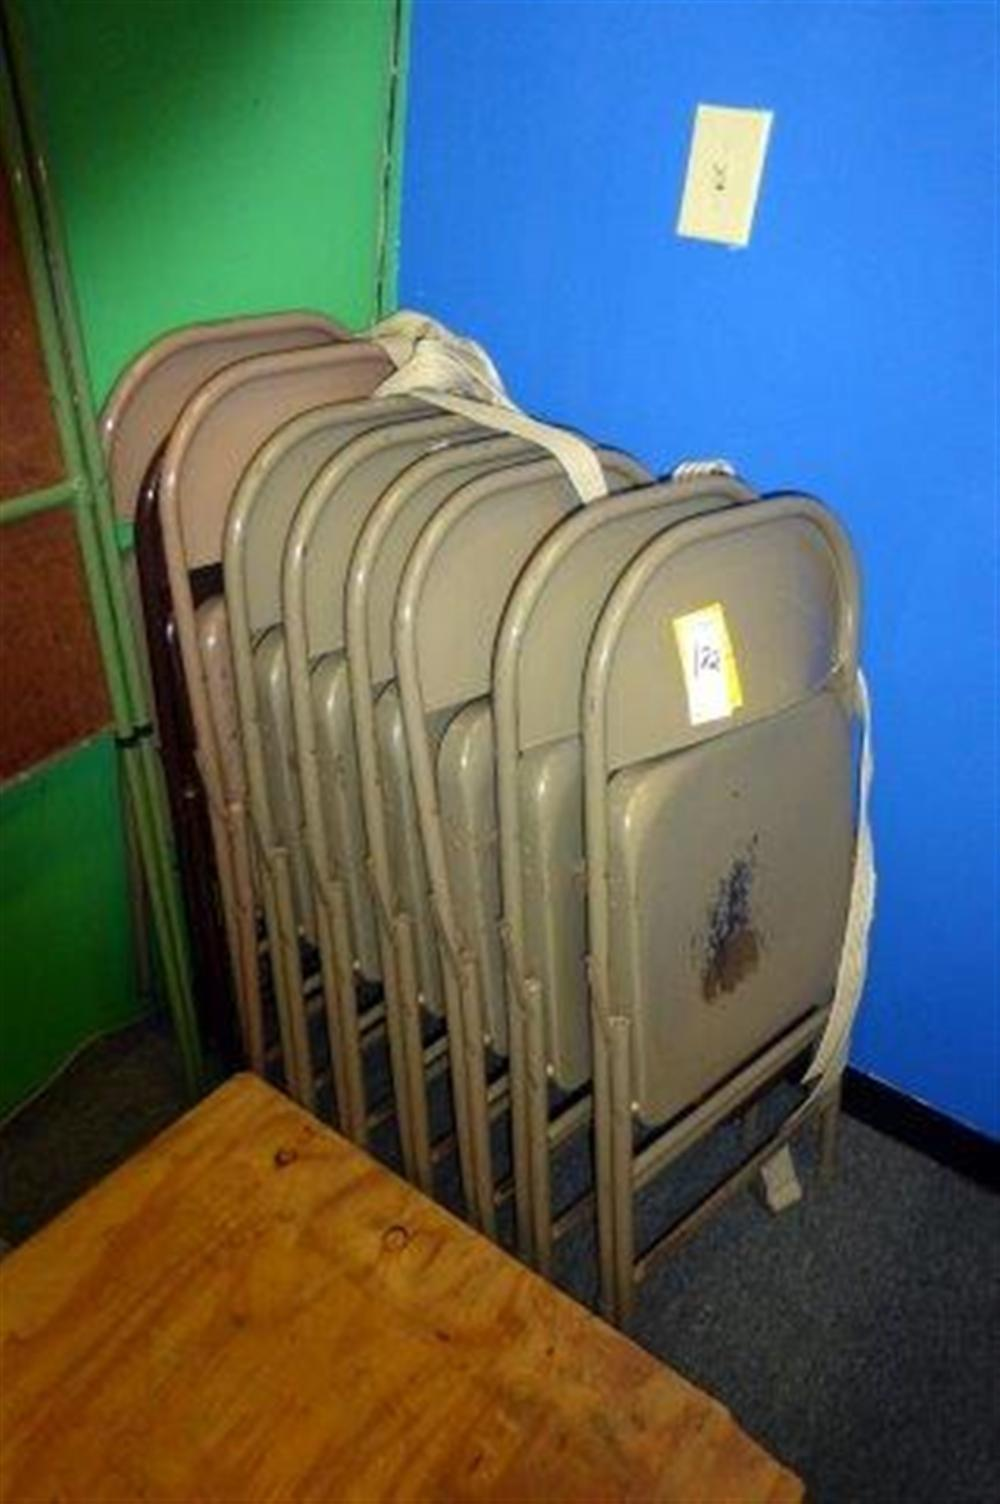 9-TAN FOLDING CHAIRS